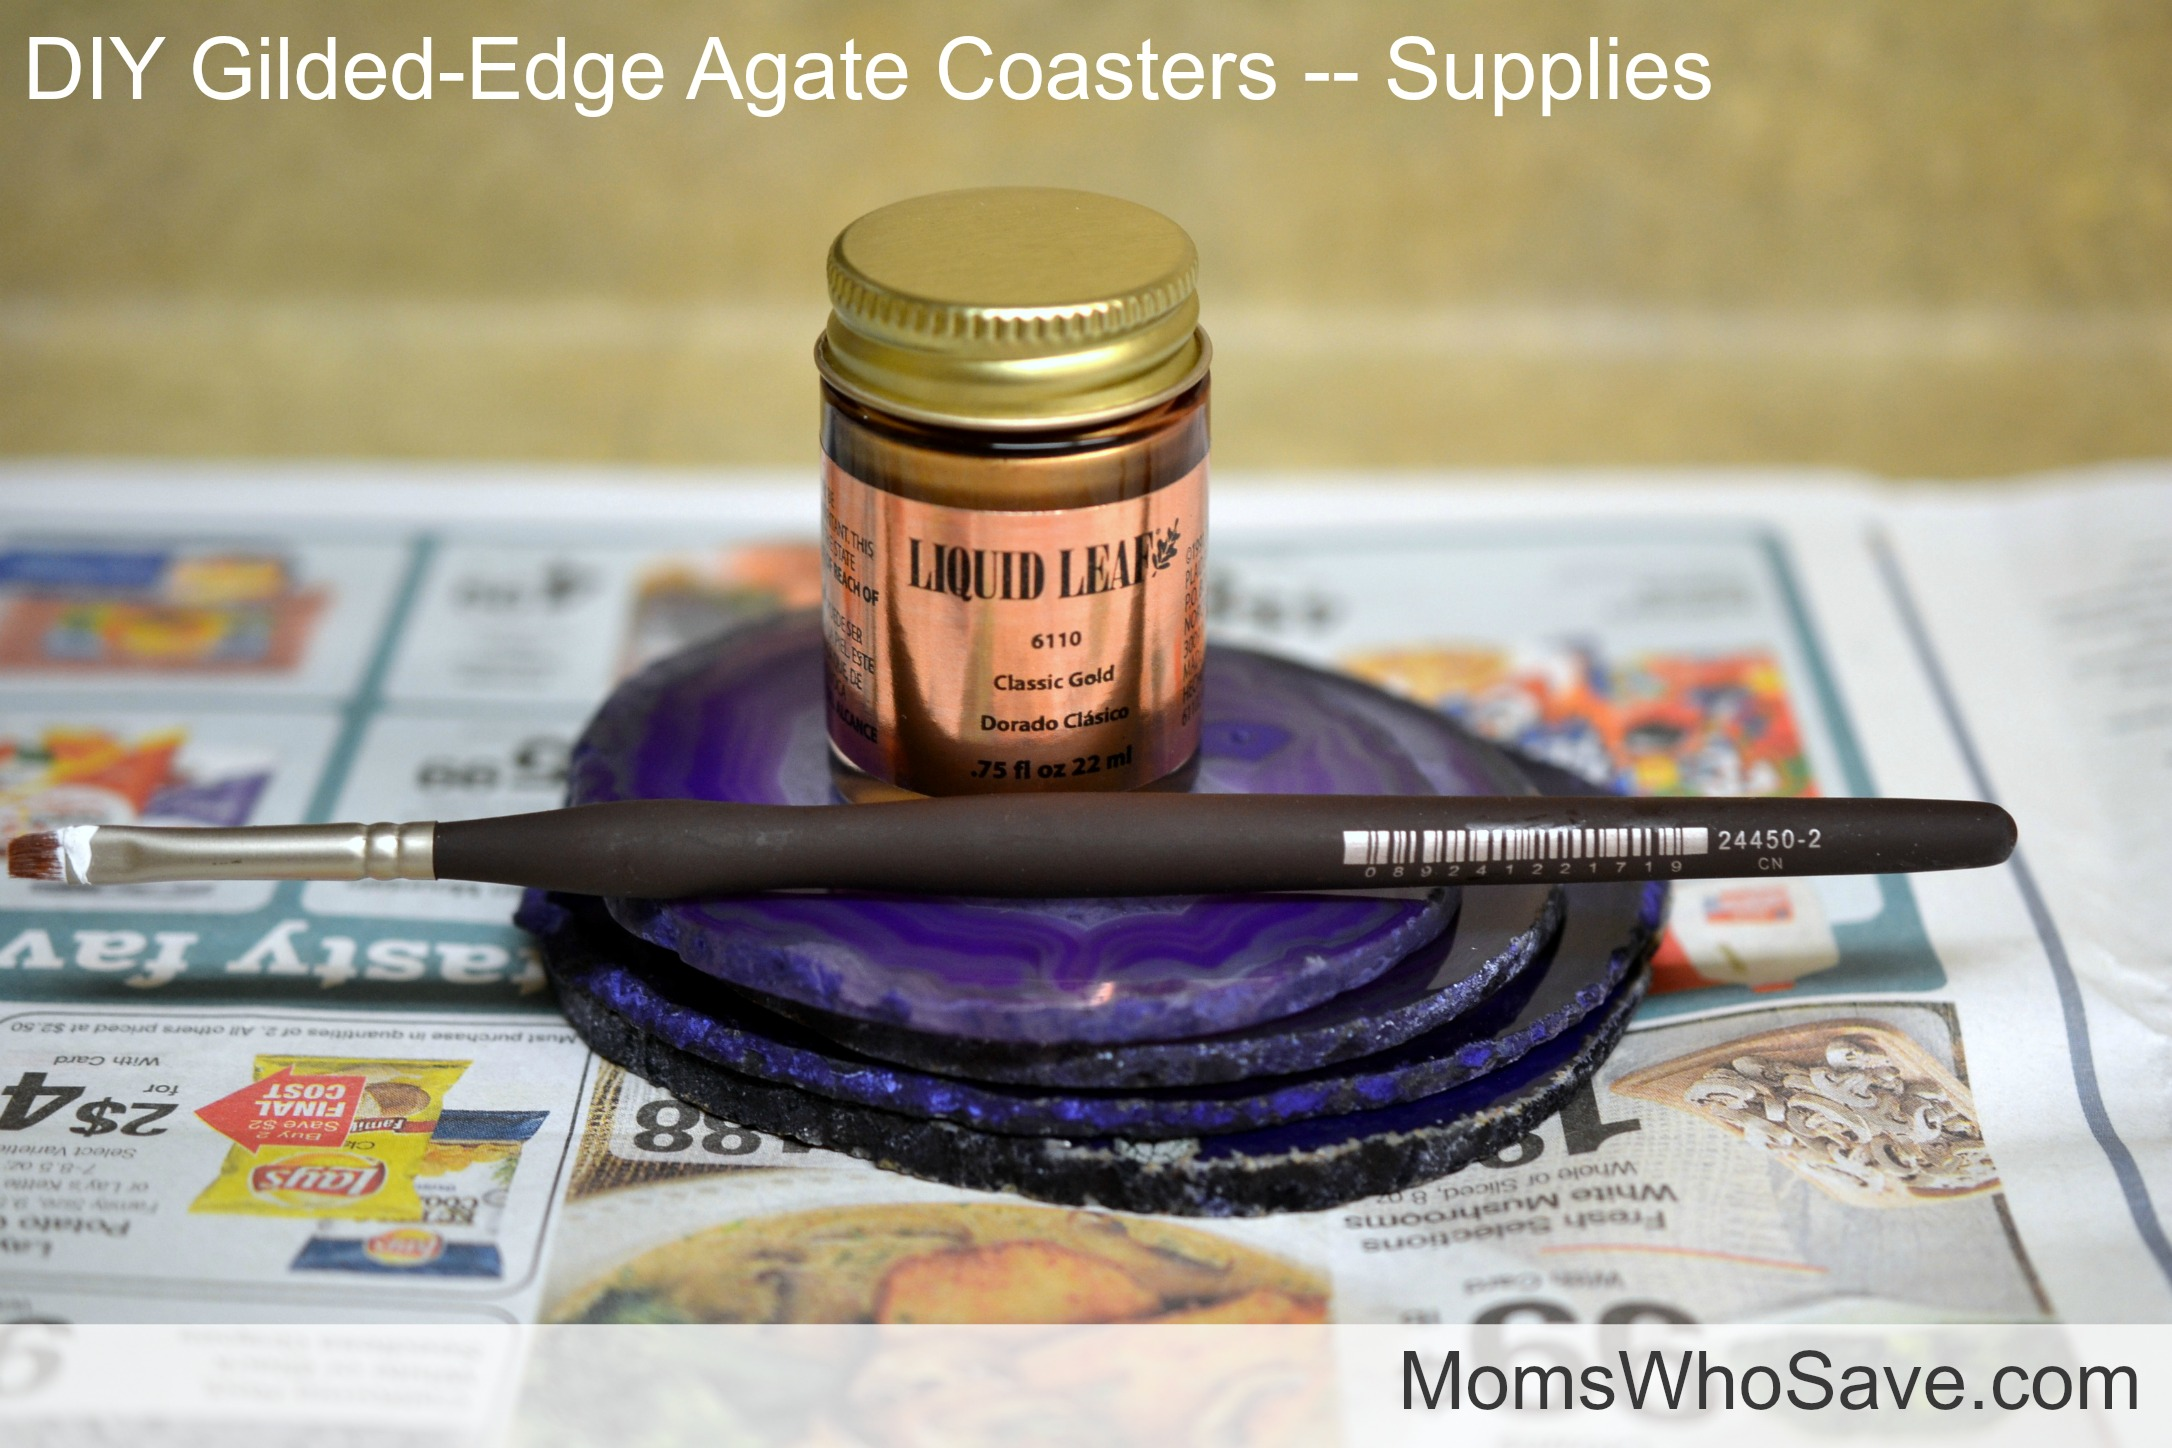 gilded-edge agate coasters supplies